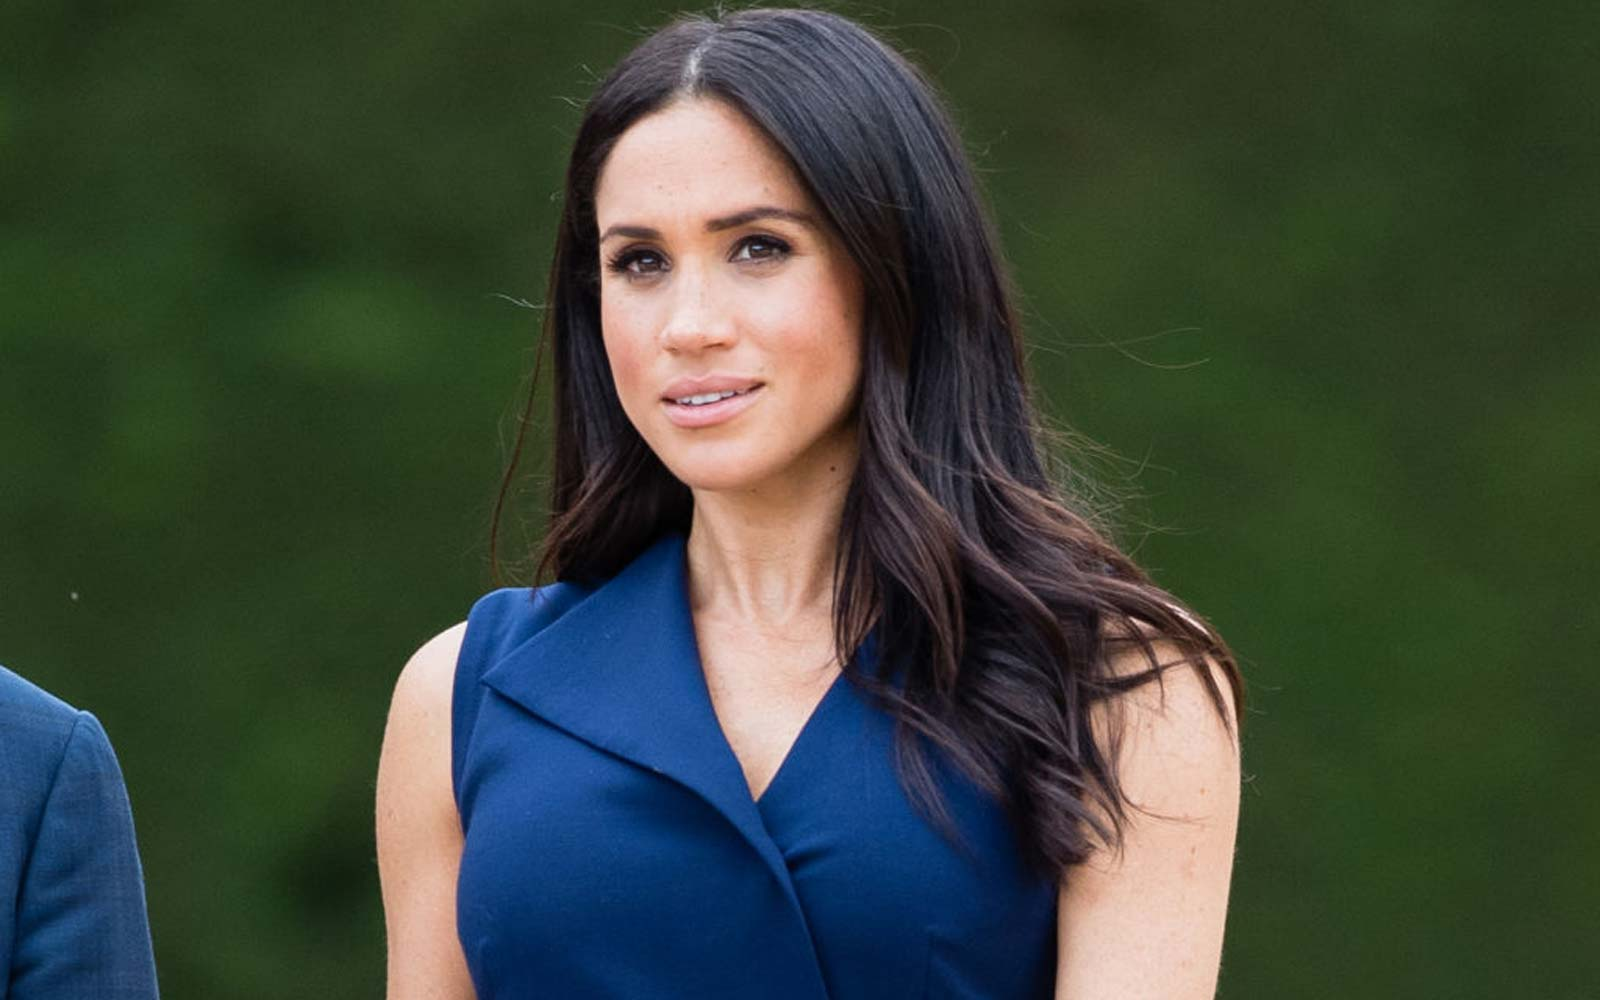 Meghan Markle's Personal Assistant Has Already Resigned, According to Reports